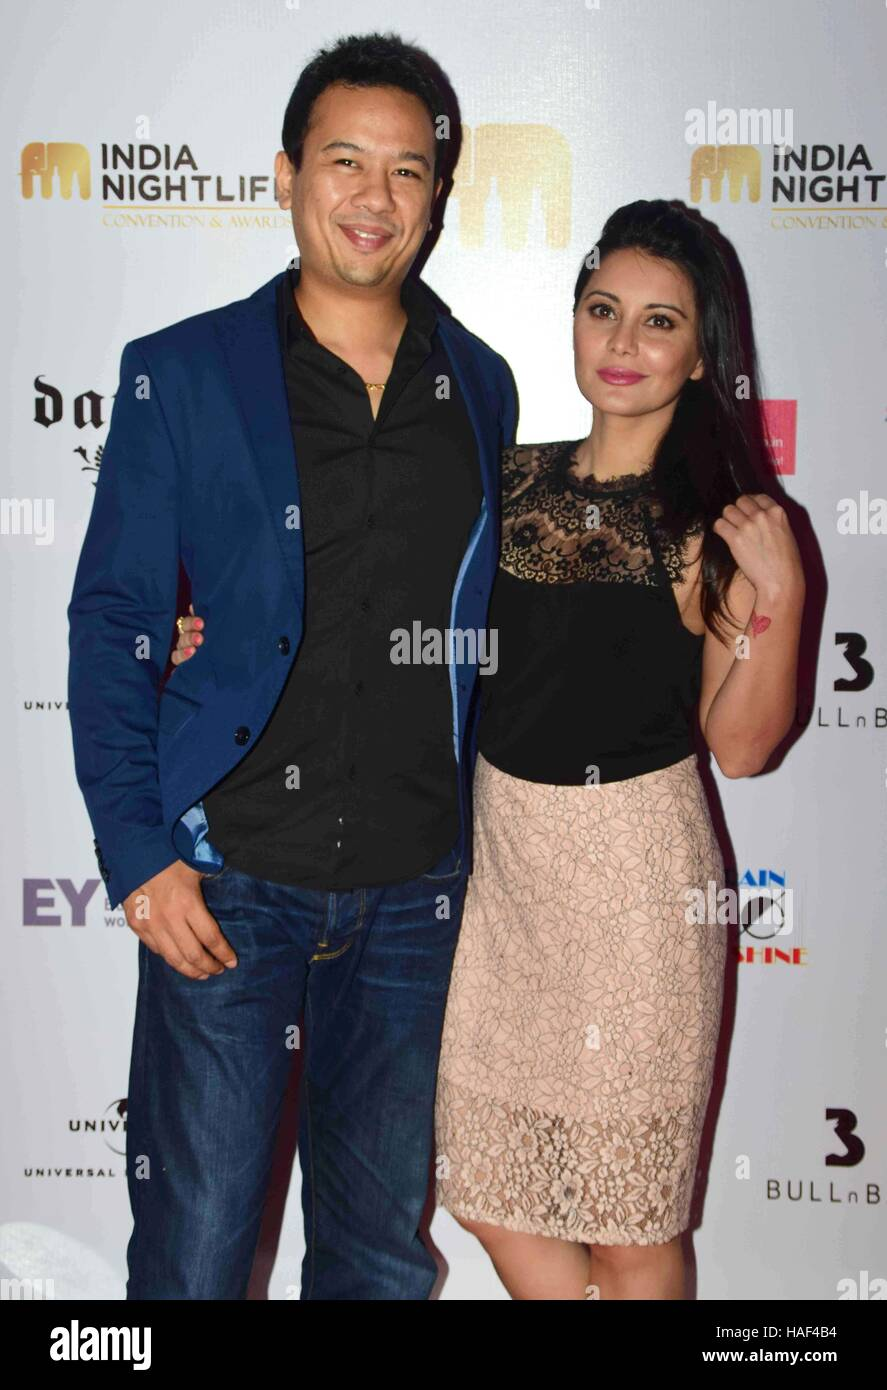 Ryan Tham, owner Trilogy night club and his wife Bollywood actor Minissha Lamba India Nightlife Convention Awards - Stock Image